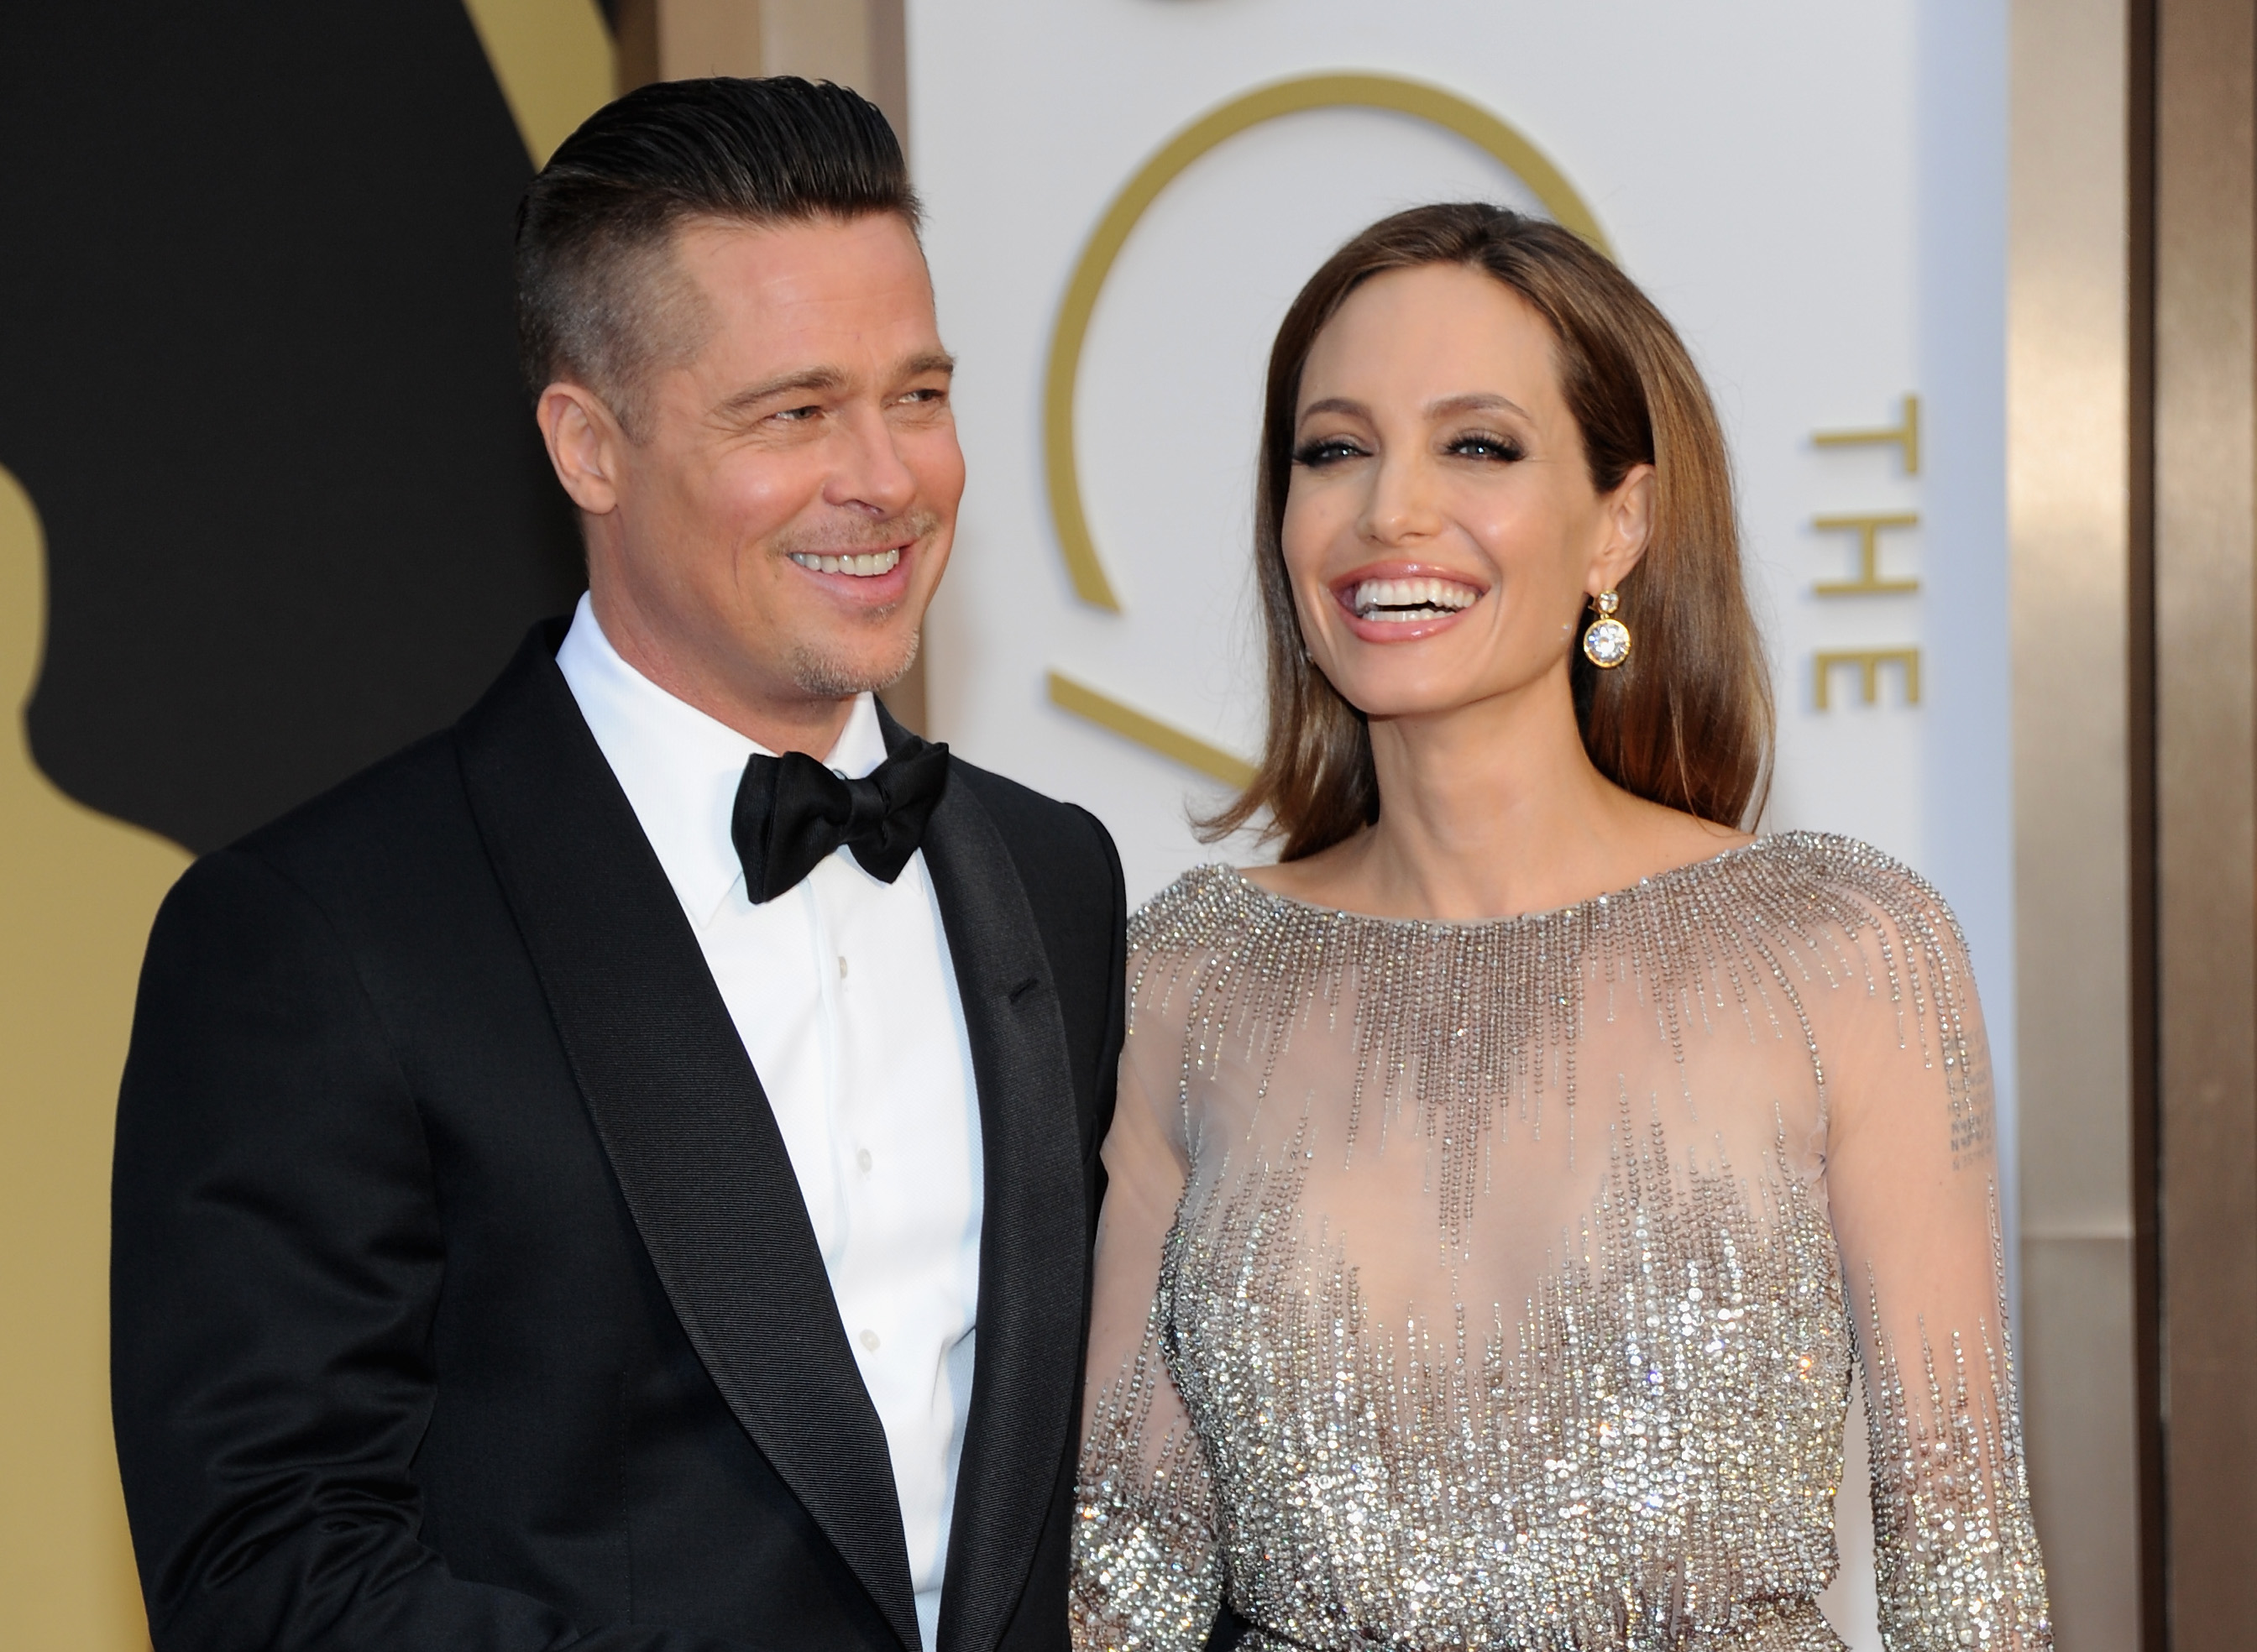 brad pitt Angelina jolie are married france august 2014